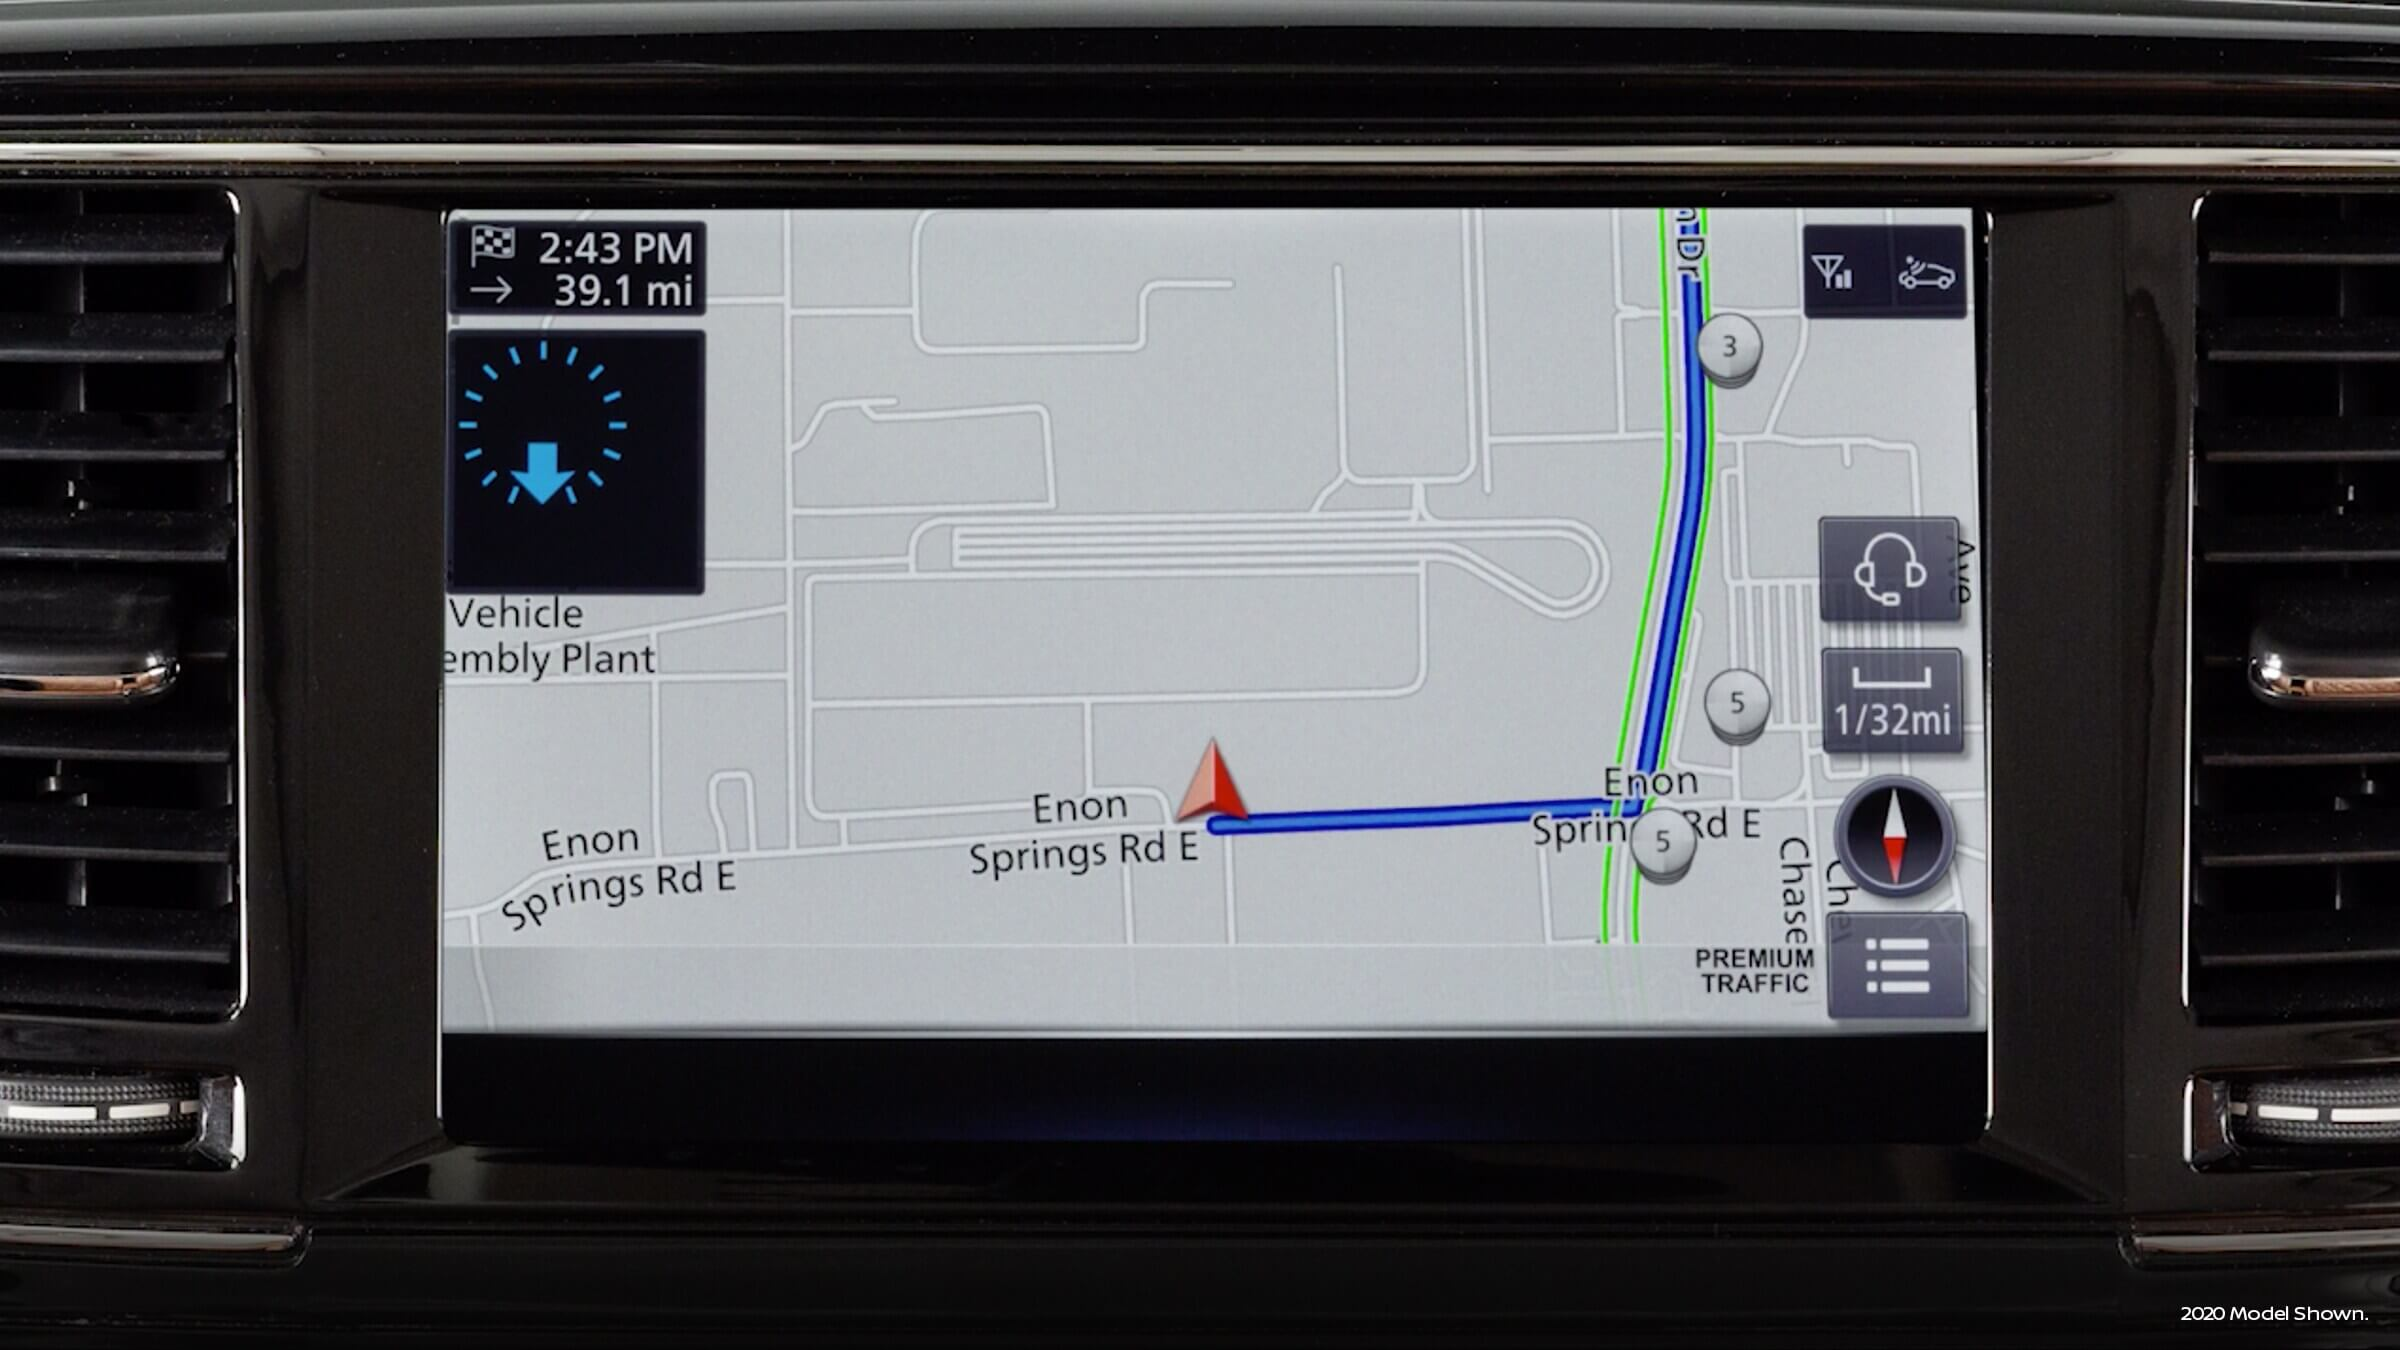 2021 Infiniti Qx80 with navigation